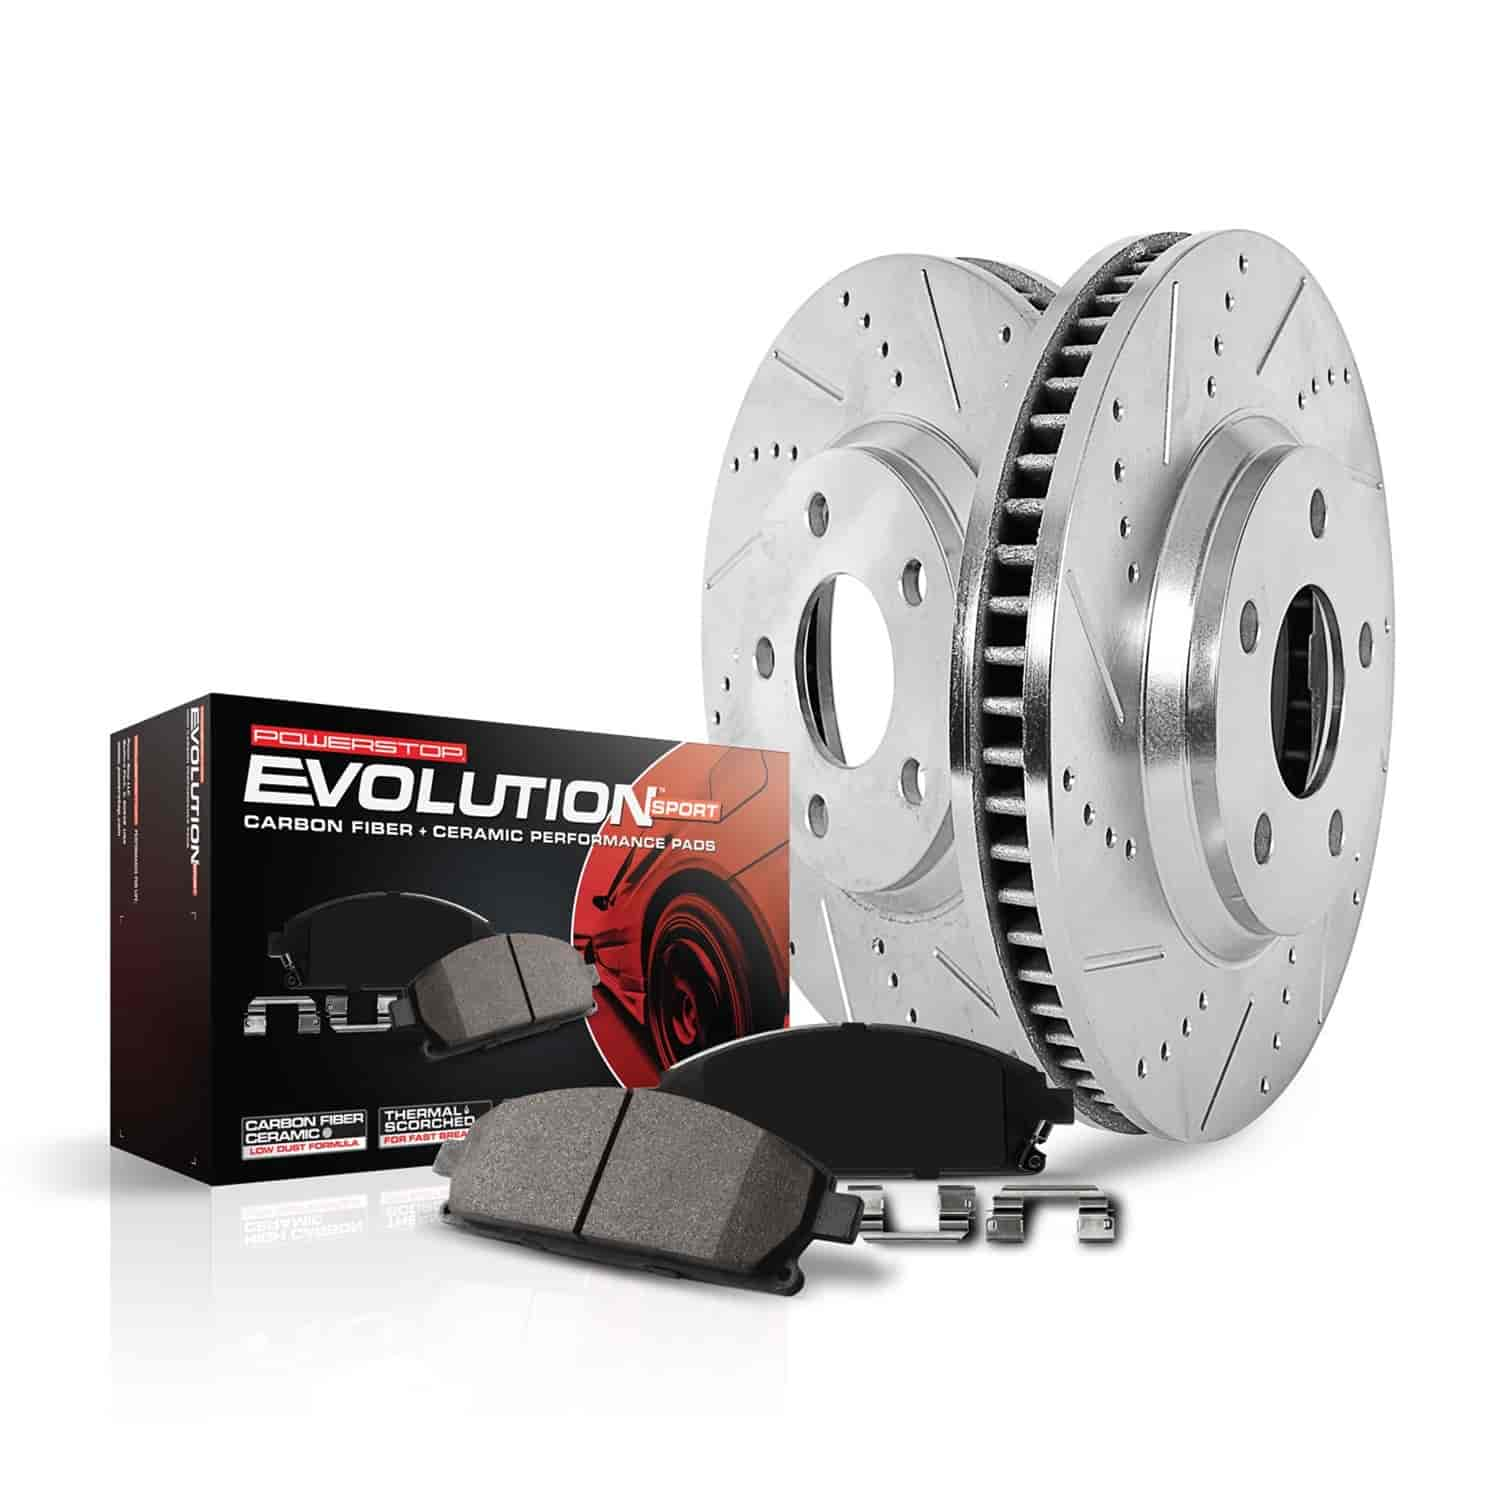 2004 2005 Chevy Cavalier OE Replacement Rotors w//Ceramic Pads F